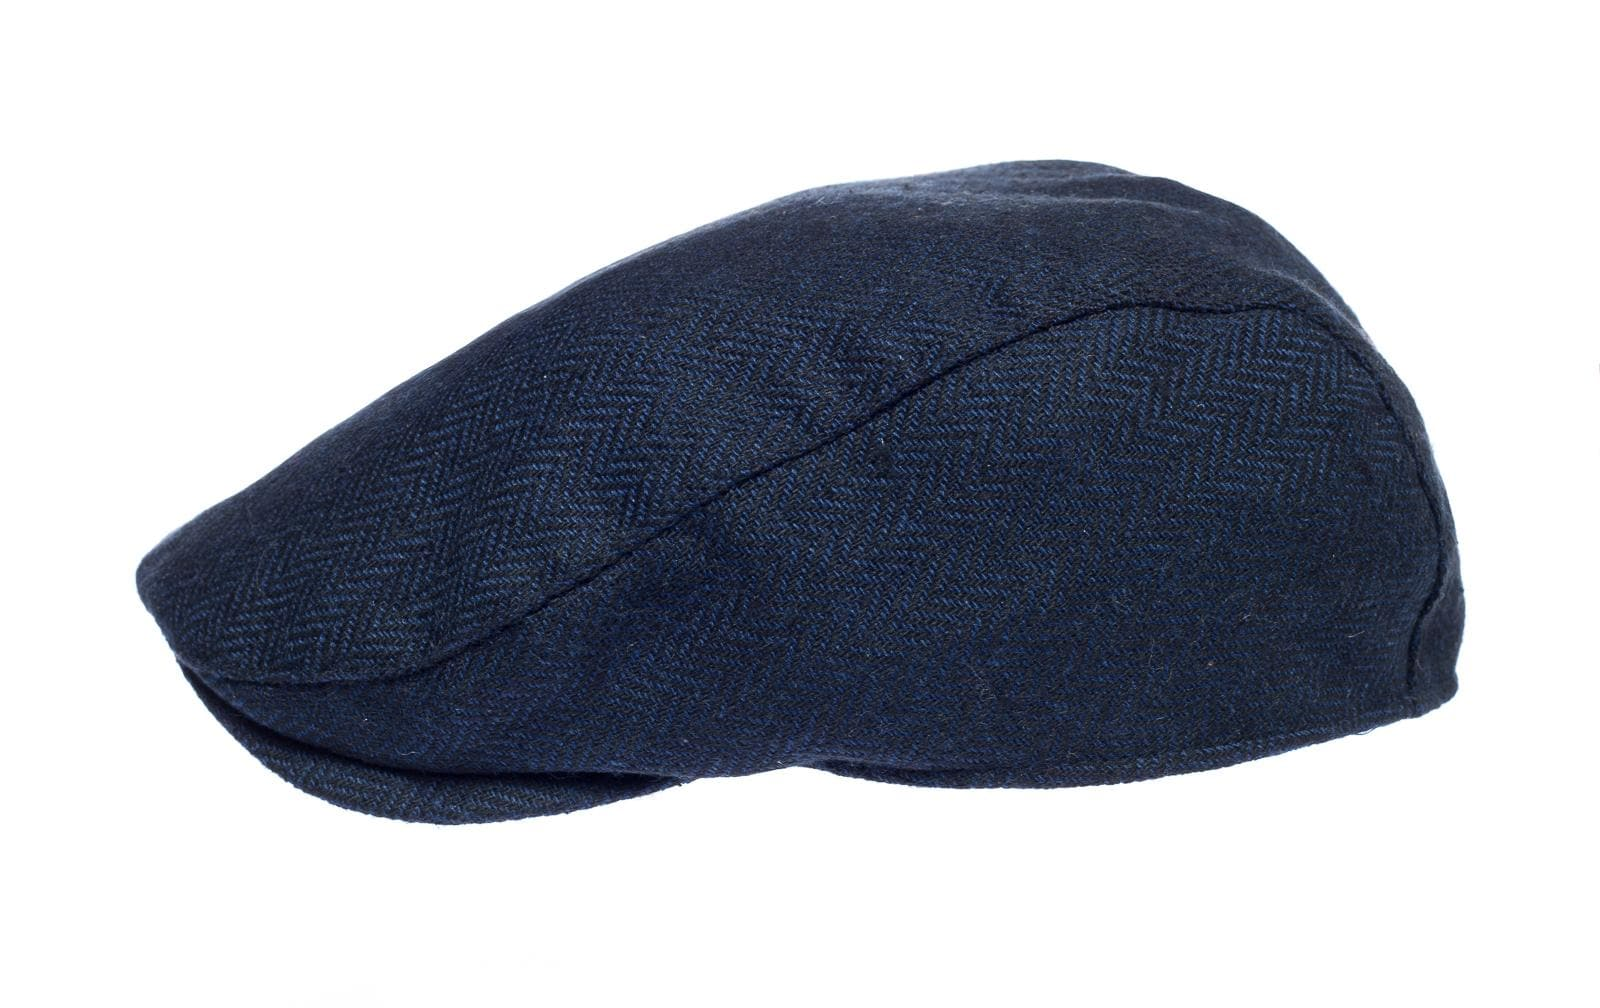 Newsboy Wool Blend Cap Paperboy Men Boy Gatsby Hipster Ivy Hat, Herringbone Navy Blue